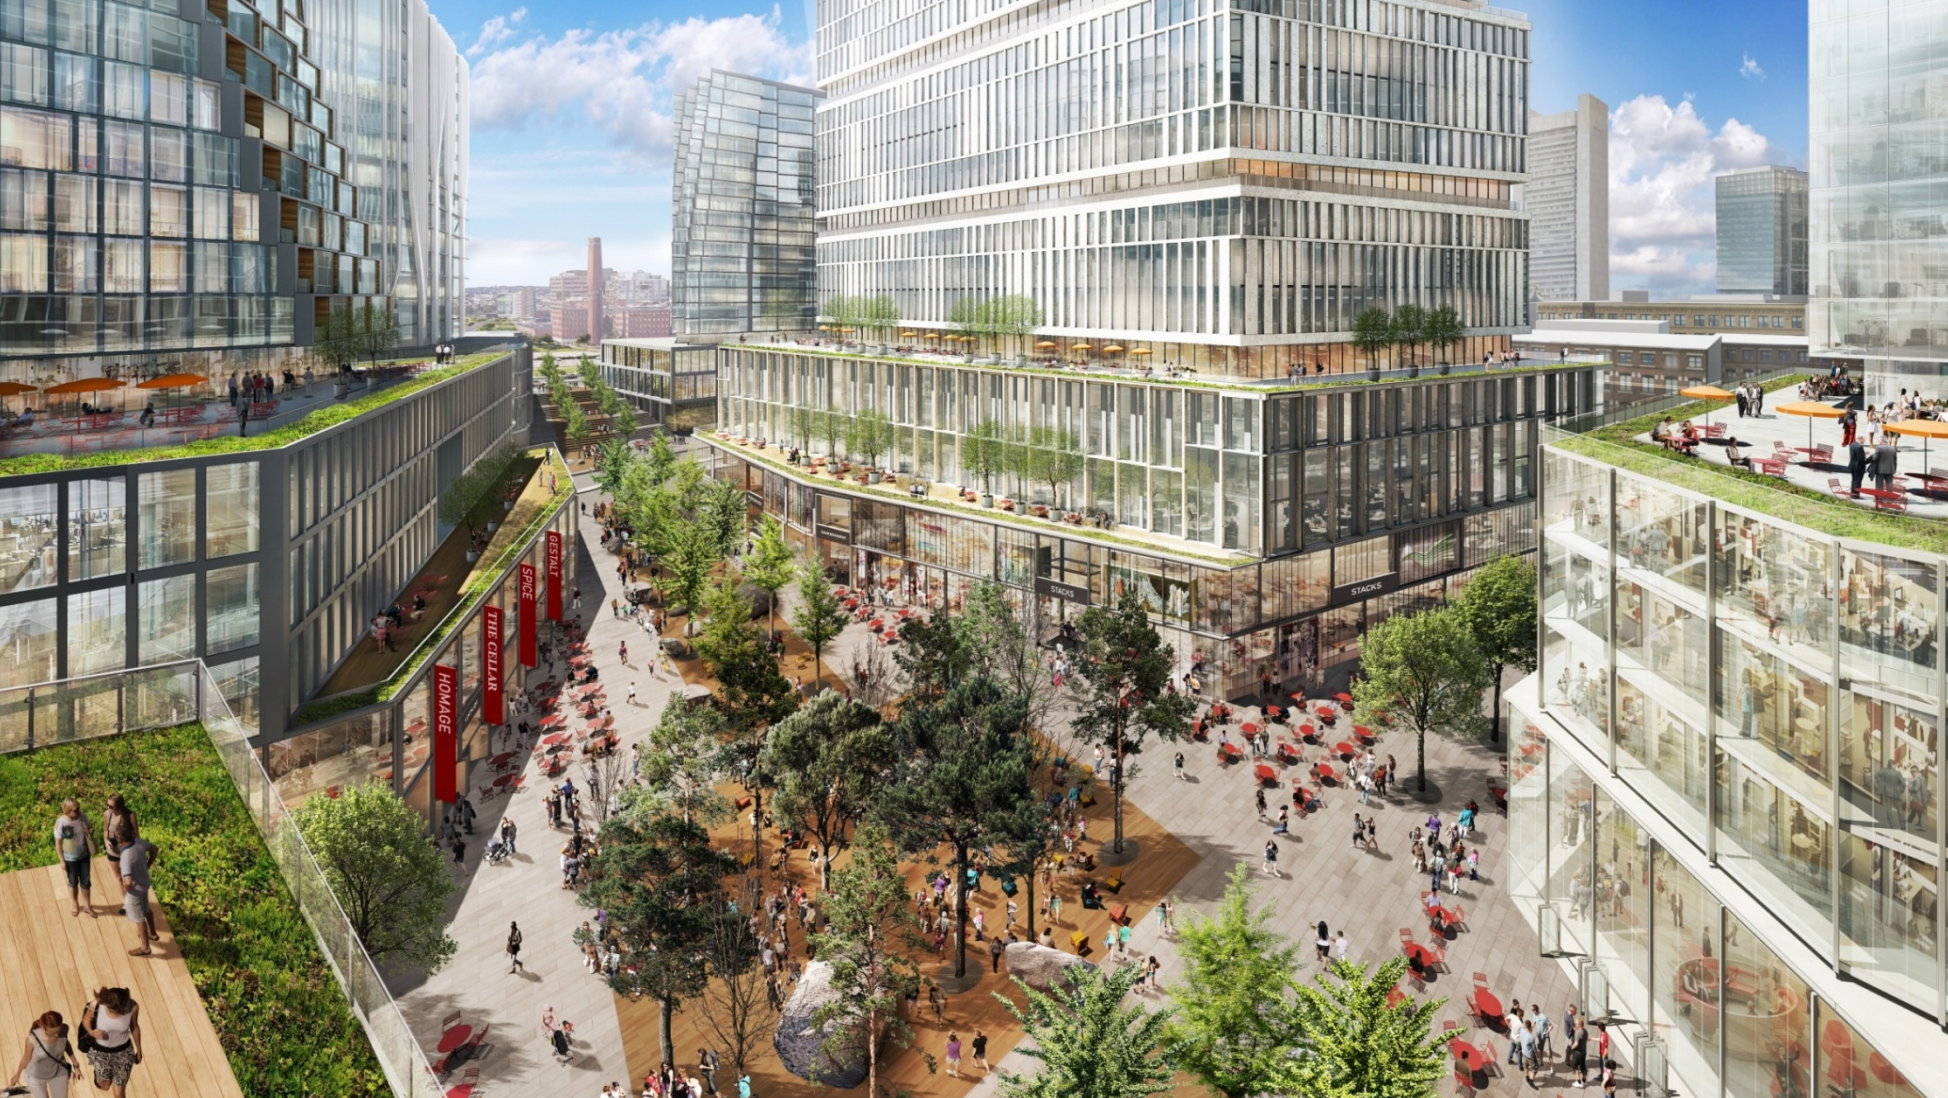 A new blueprint for the seaport active uses envisioned in updated seaport square plan